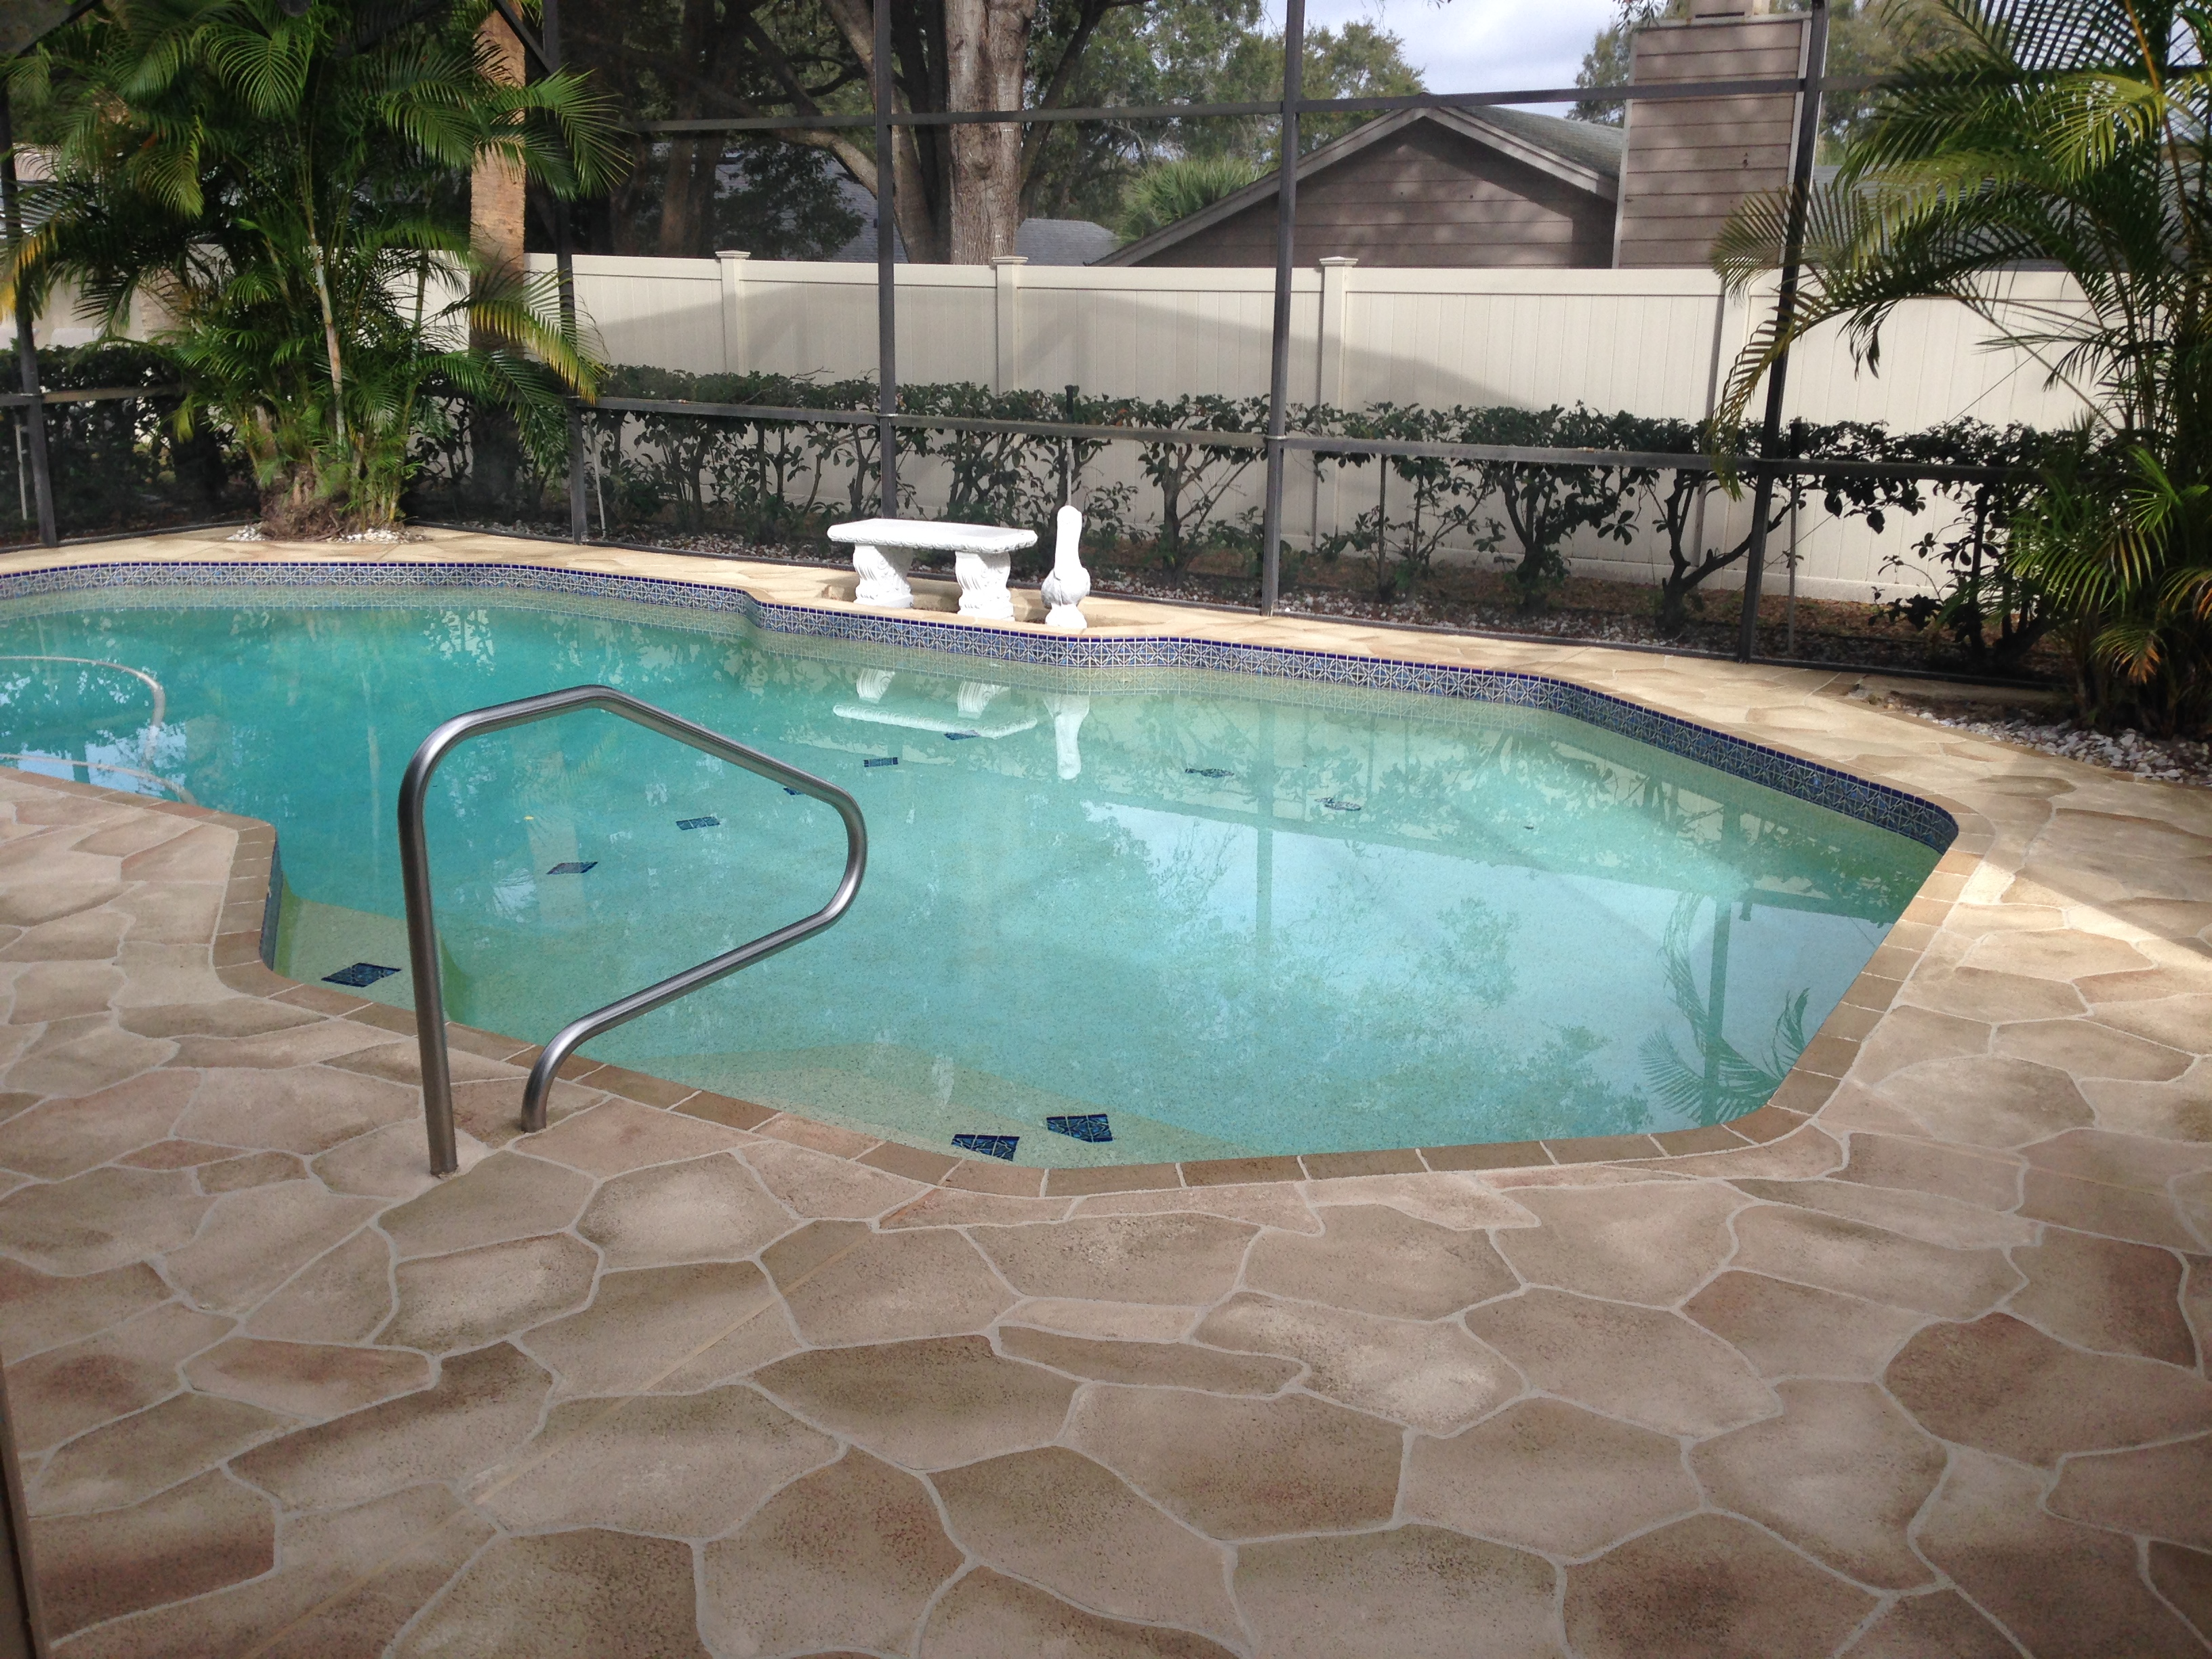 Concrete designs florida flagstone pool deck for Pool designs florida